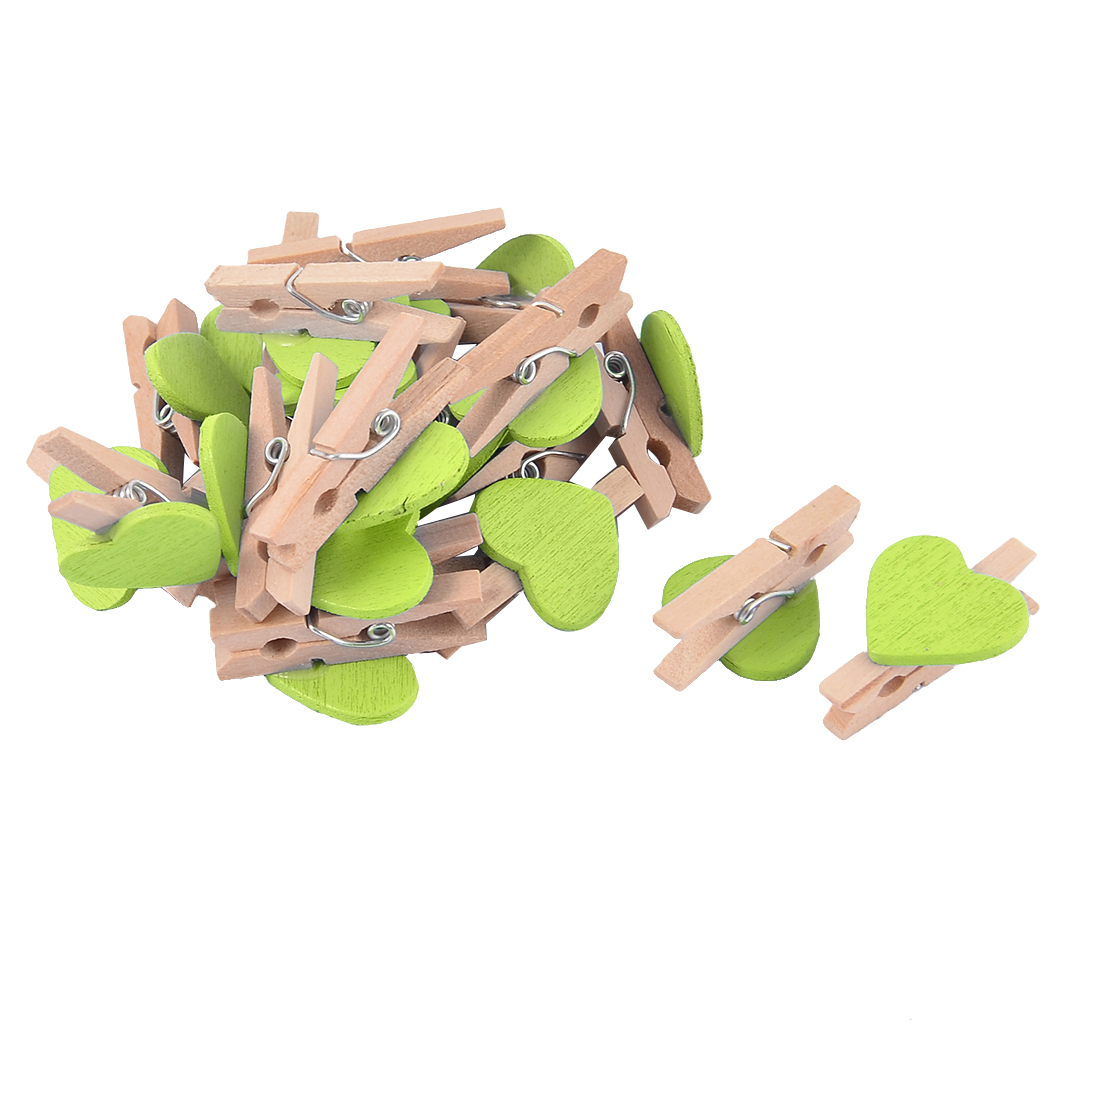 Album Card Photo Paper Love Heart Crafts Mini Wooden Clip Pegs Green 20pcs